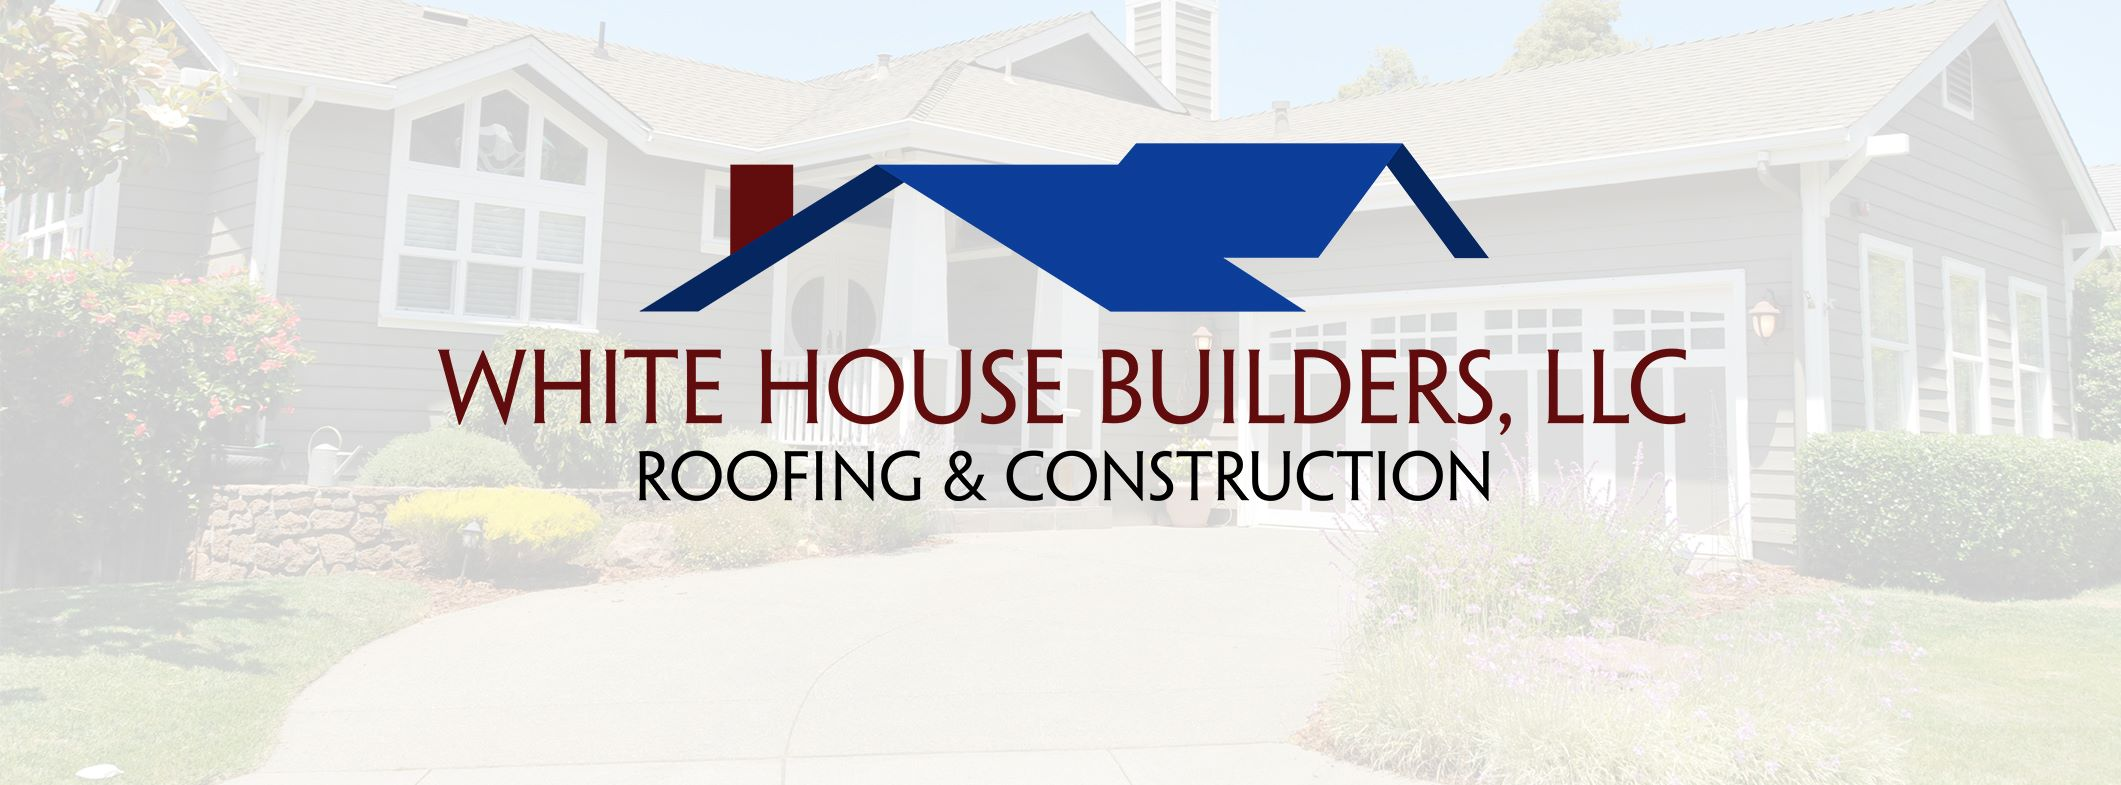 Roof Service In Summerville, Summerville Roofing, White House Roofing